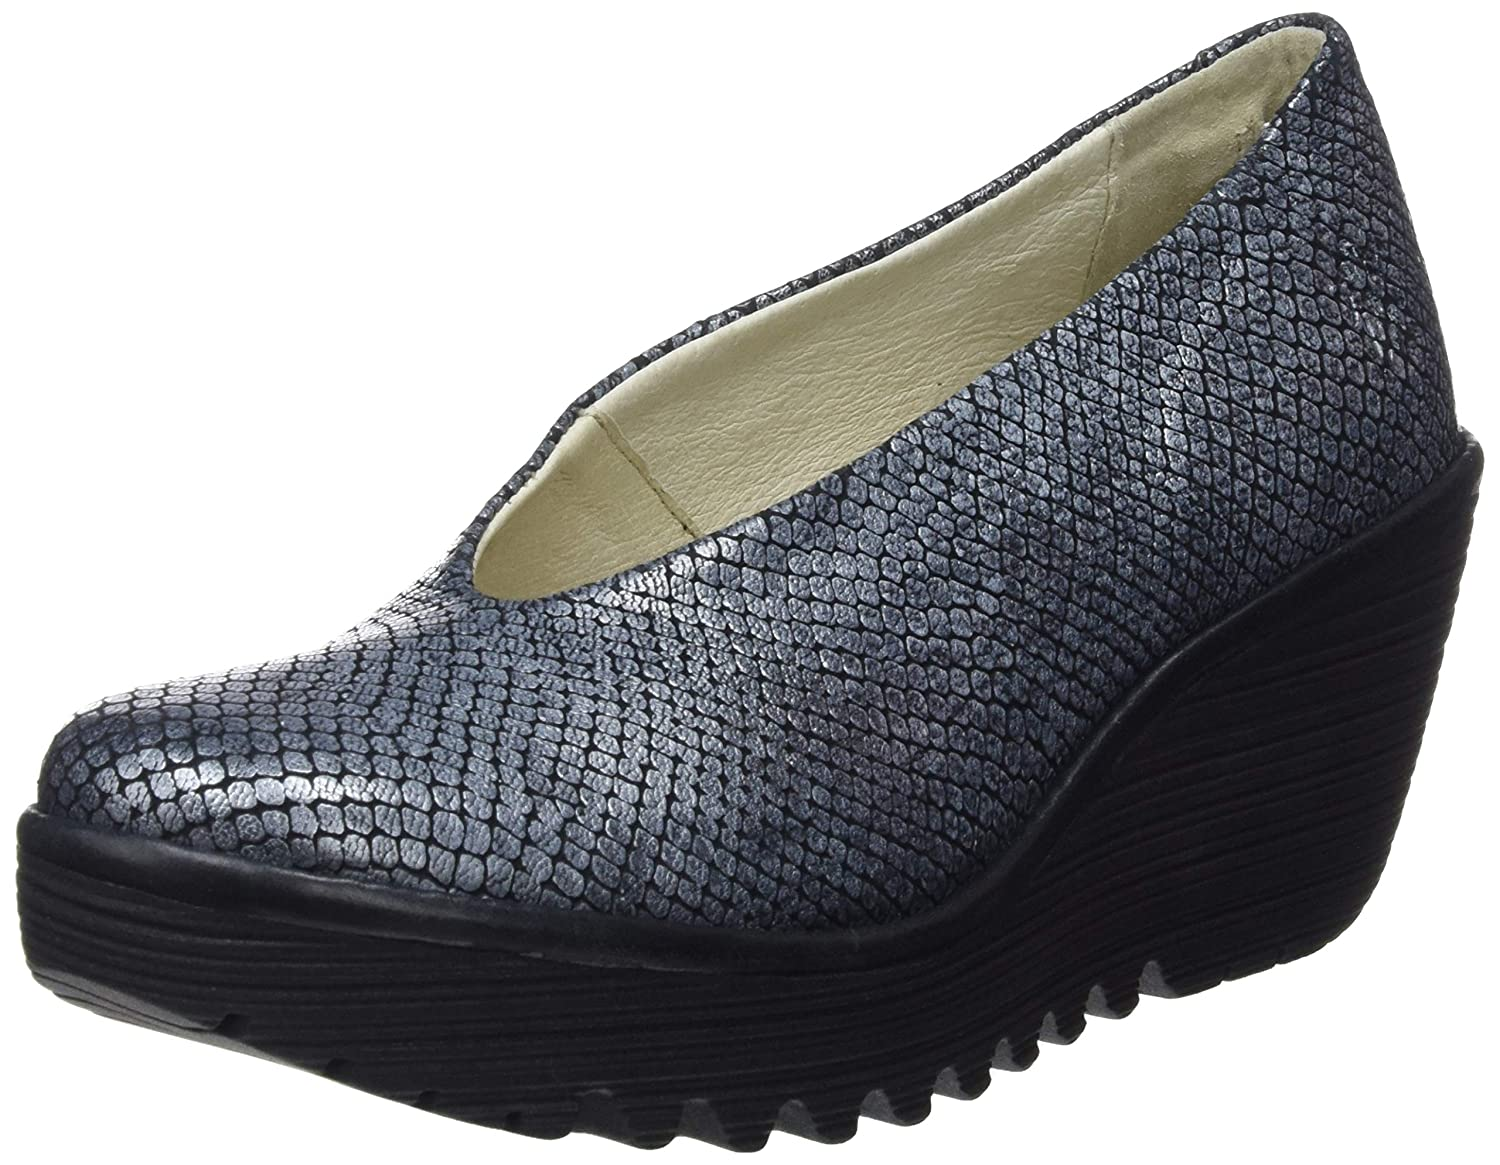 Black Black Fly London Womens Yaz Palm Rug Office Leather Work Wedge Closed Toe shoes